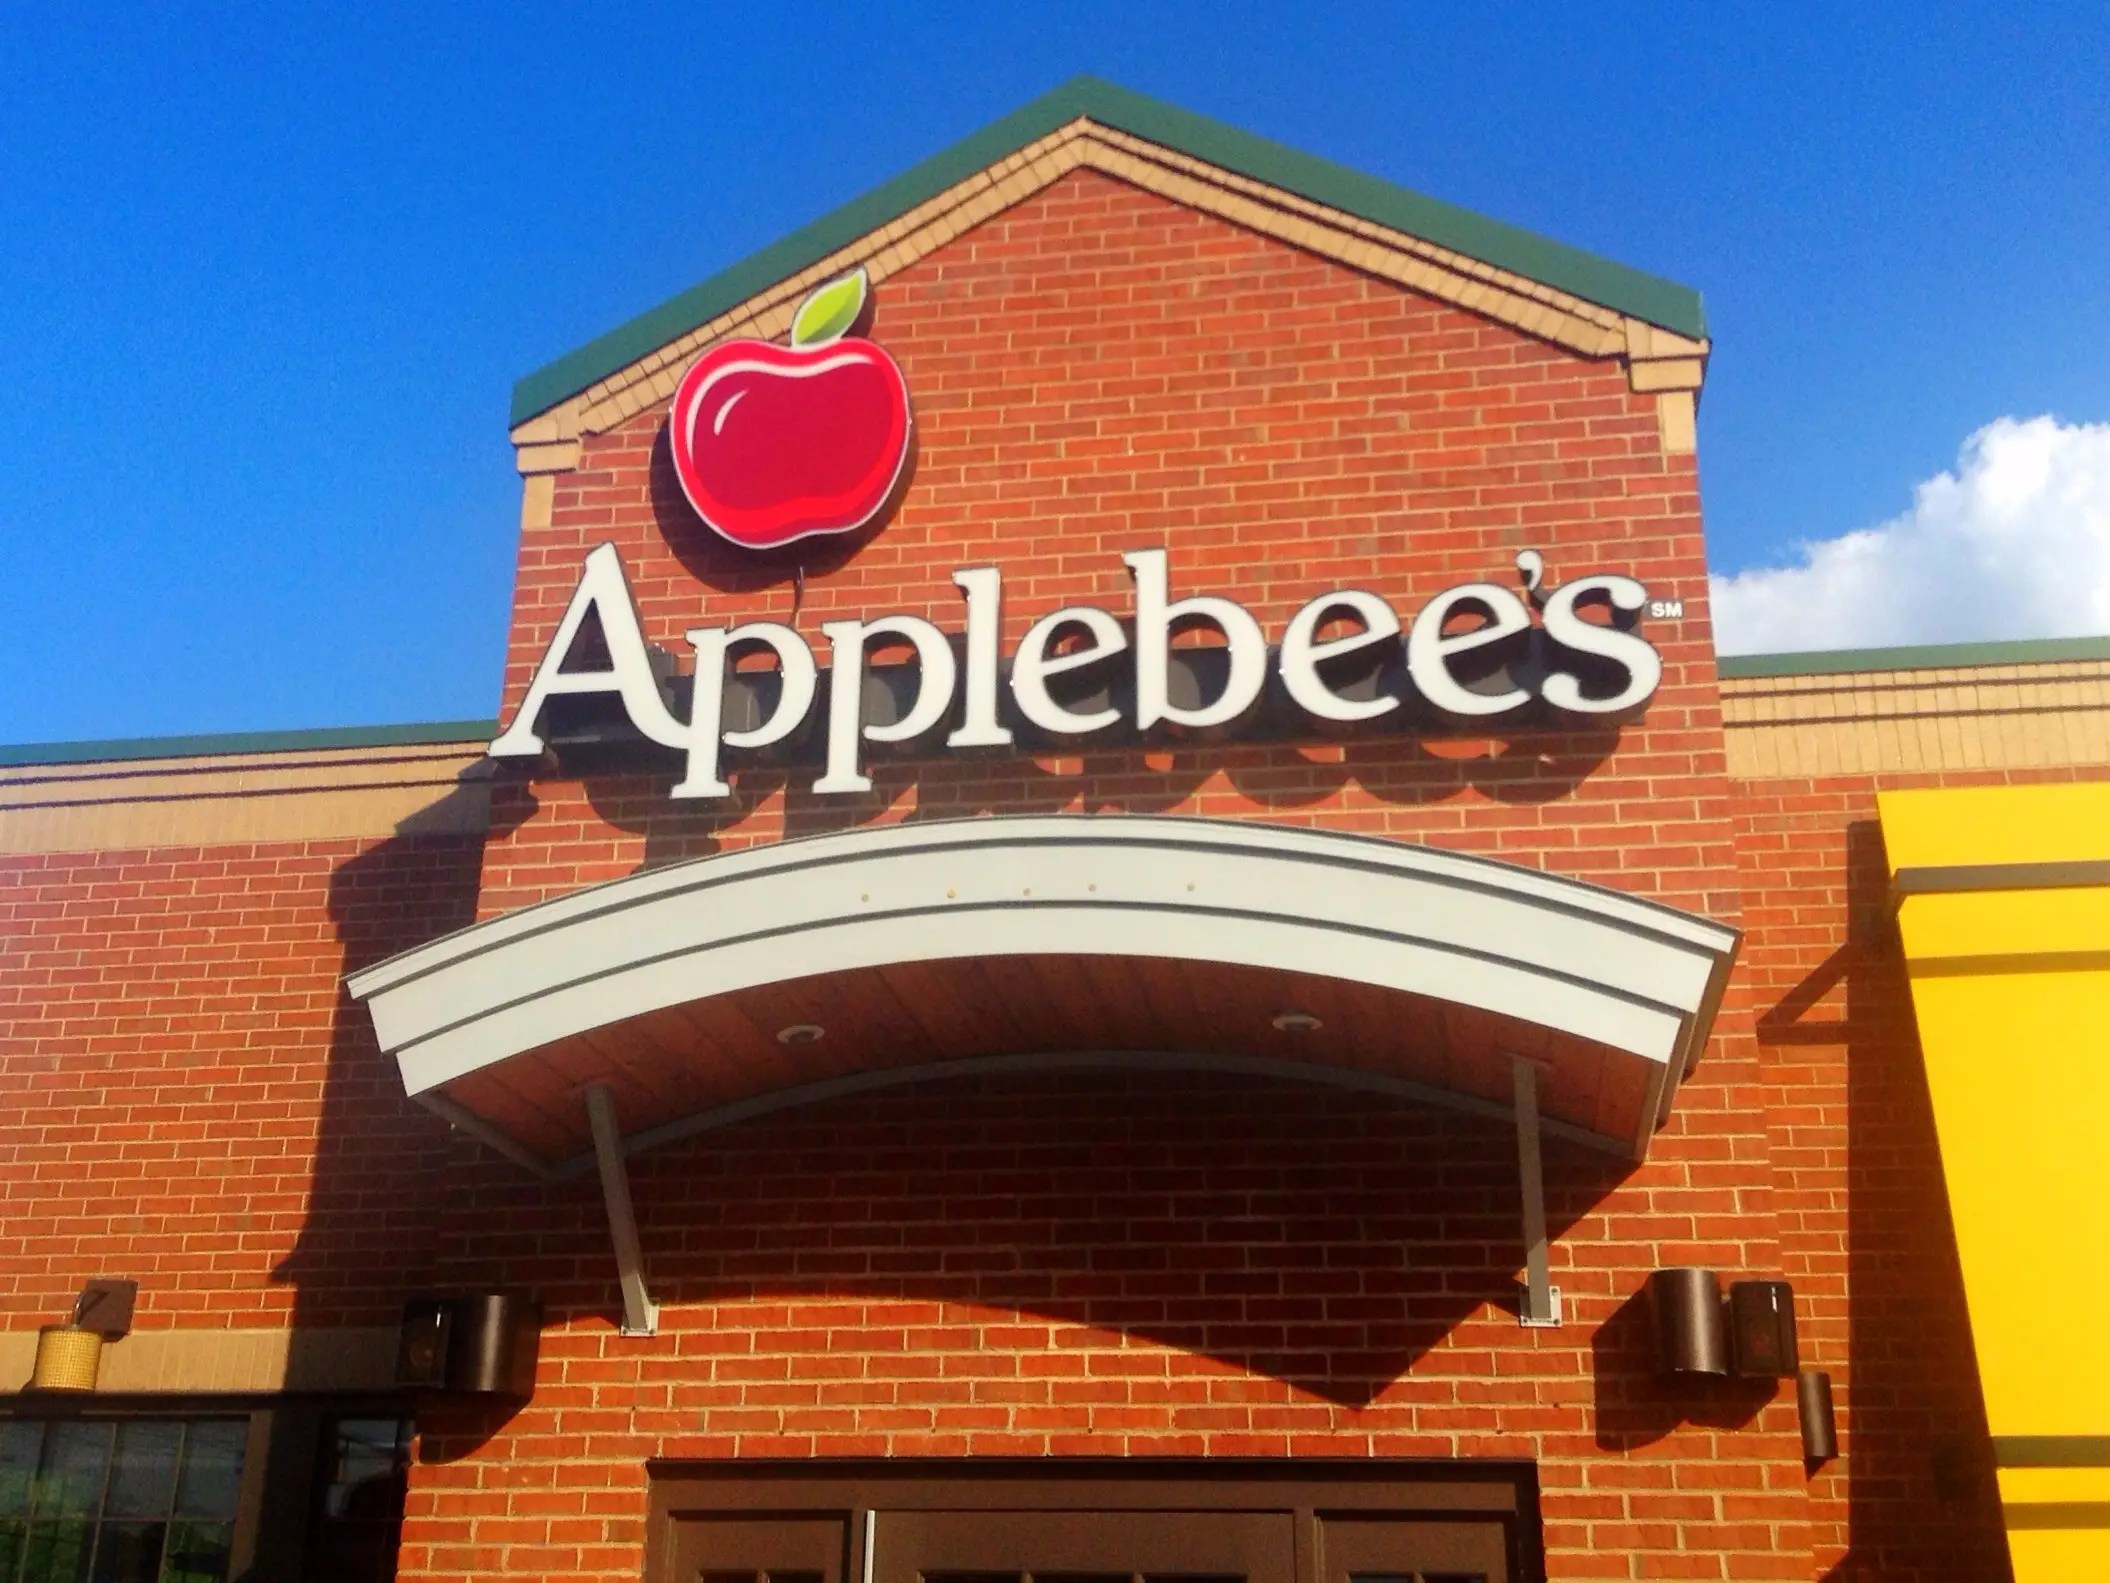 Casual dining chains like Buffalo Wild Wings and Applebee's